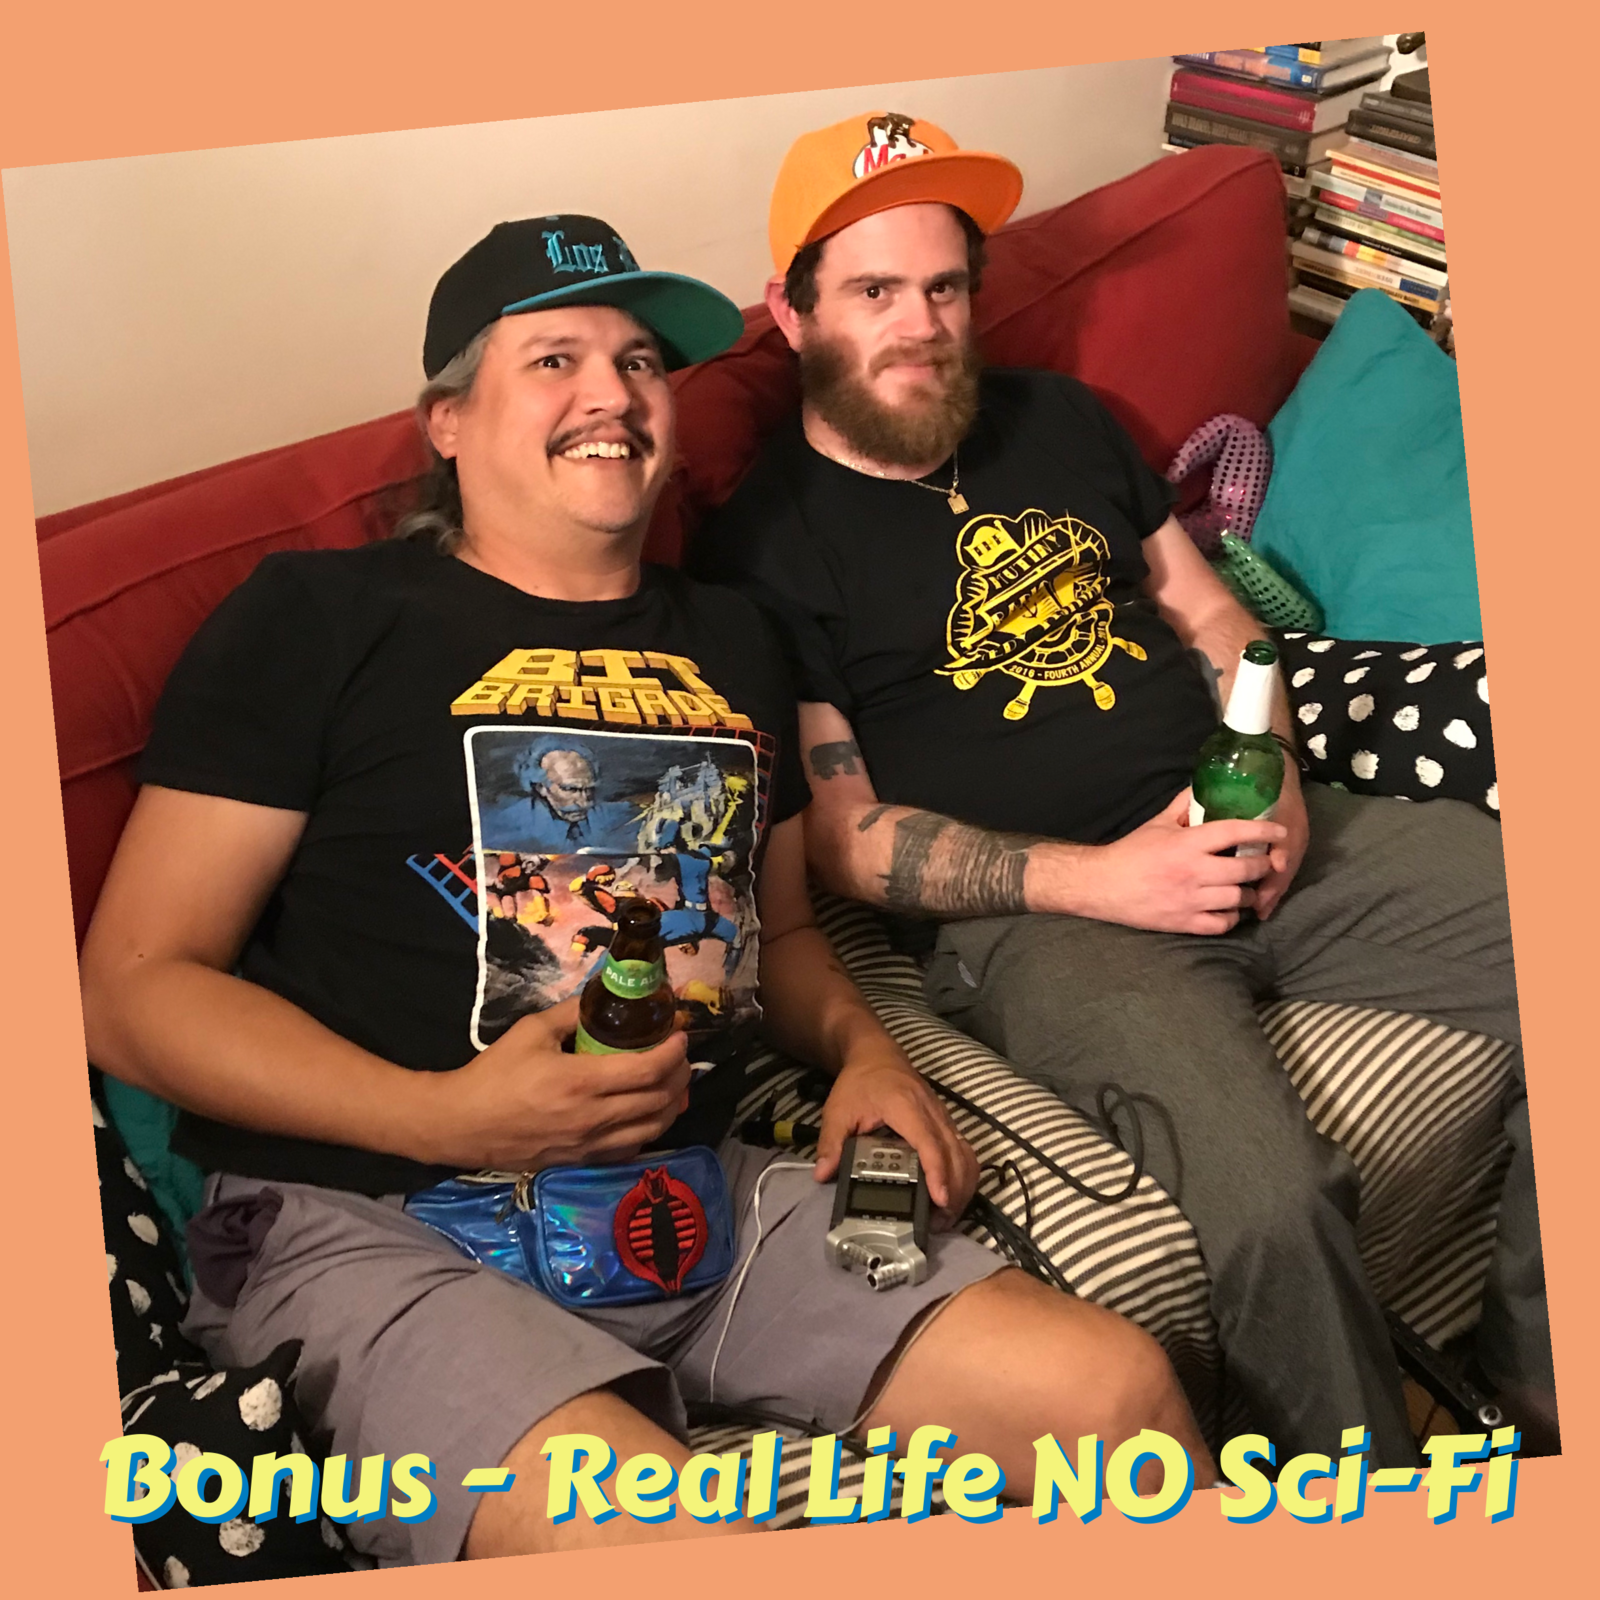 197: Bonus Real Life NO Sci-Fi - GOT Pizza and Border?